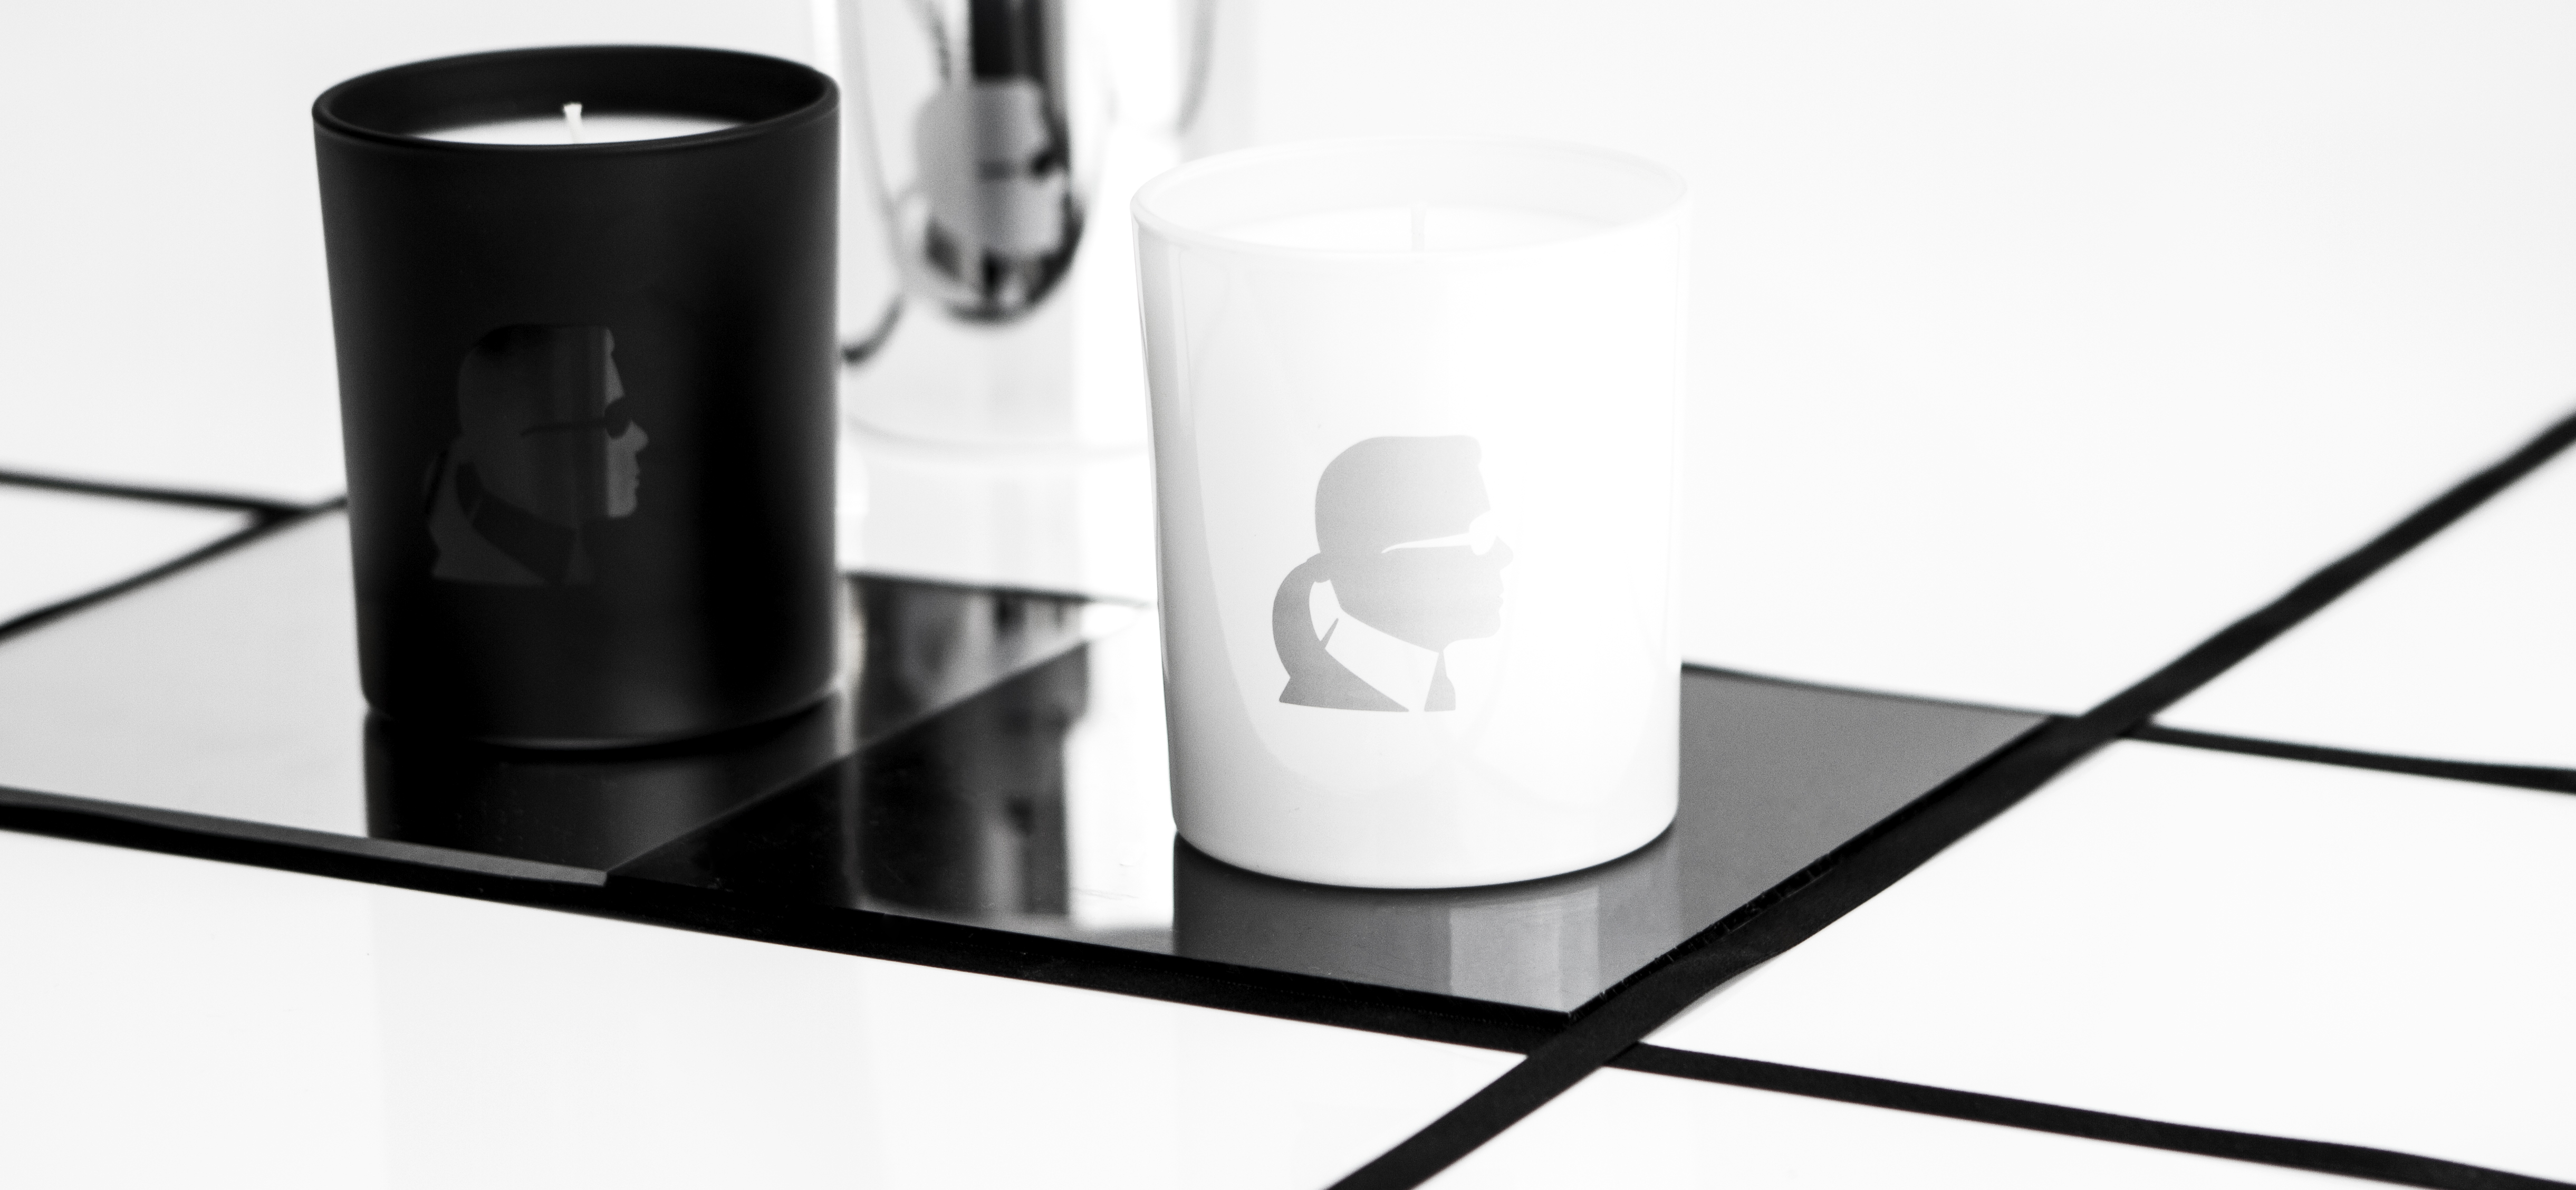 Karl Lagerfeld Scented Candles - Image courtesy of Amara